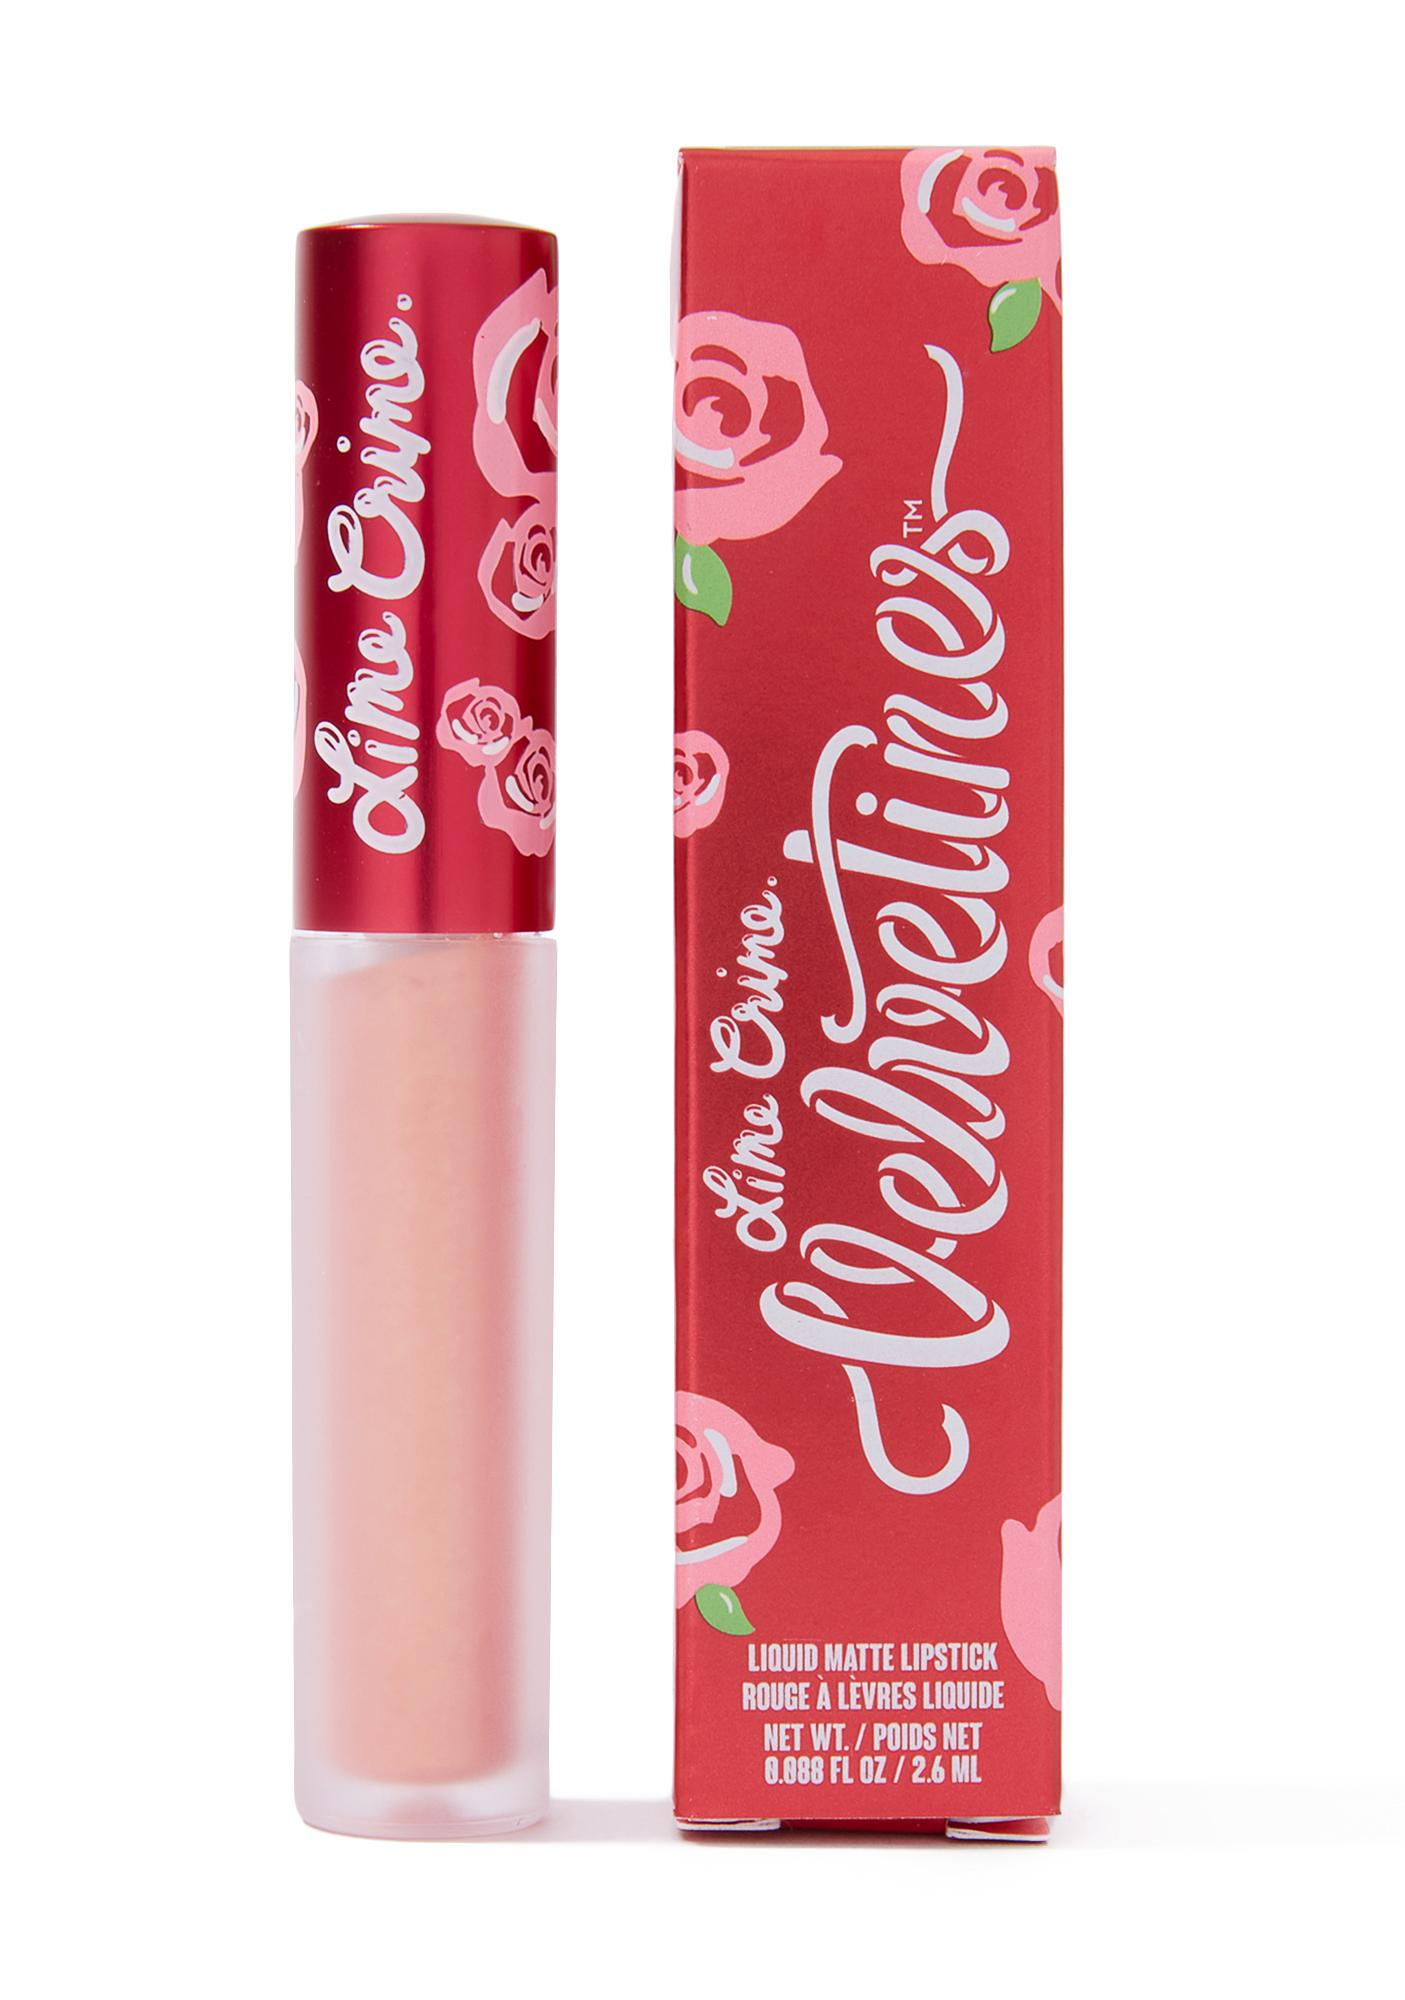 Lime Crime Siren Metallic Velvetine Liquid Lipstick